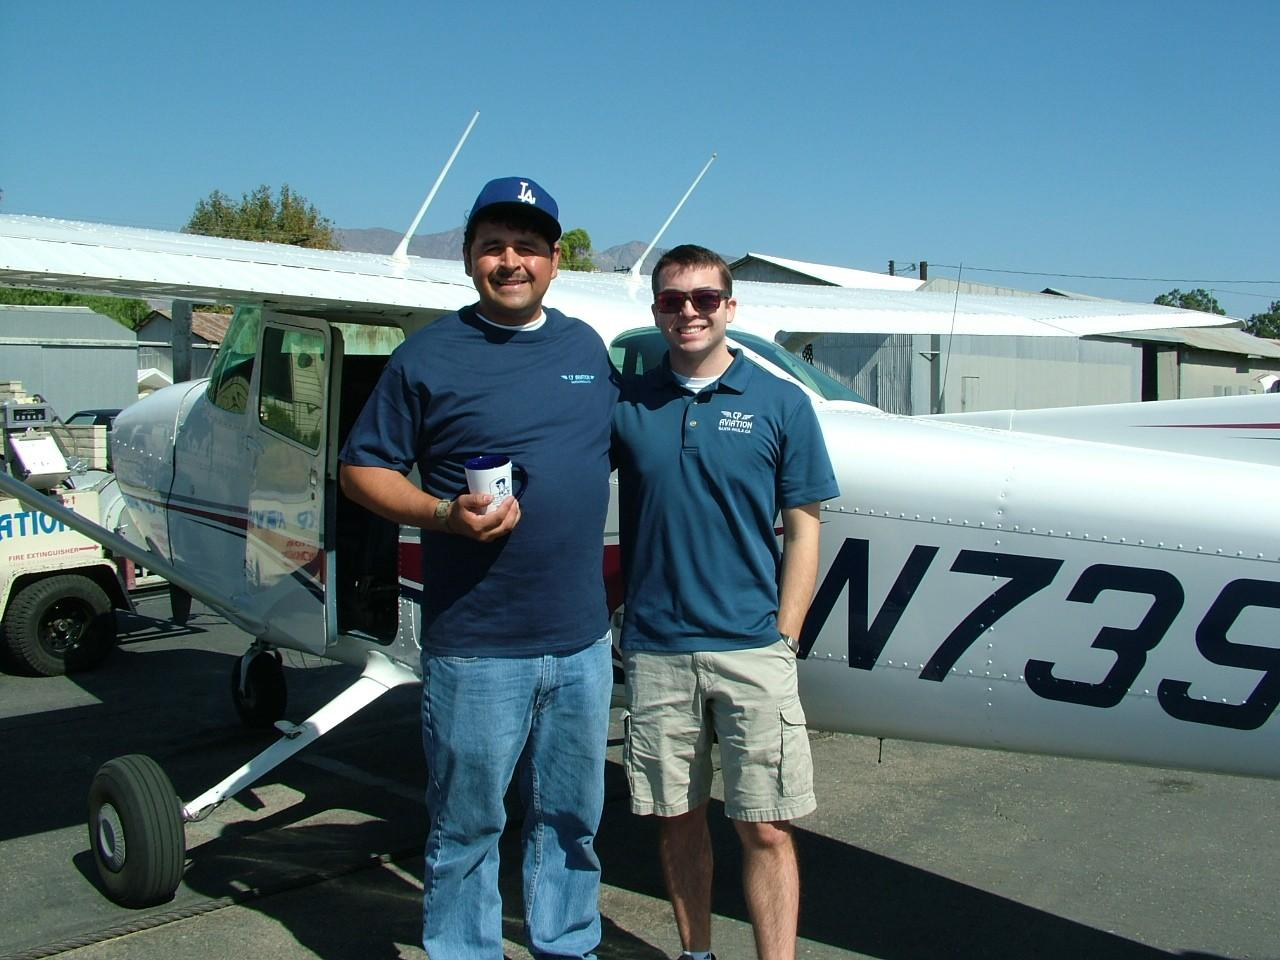 Robert Grosfield, JR - First Solo!